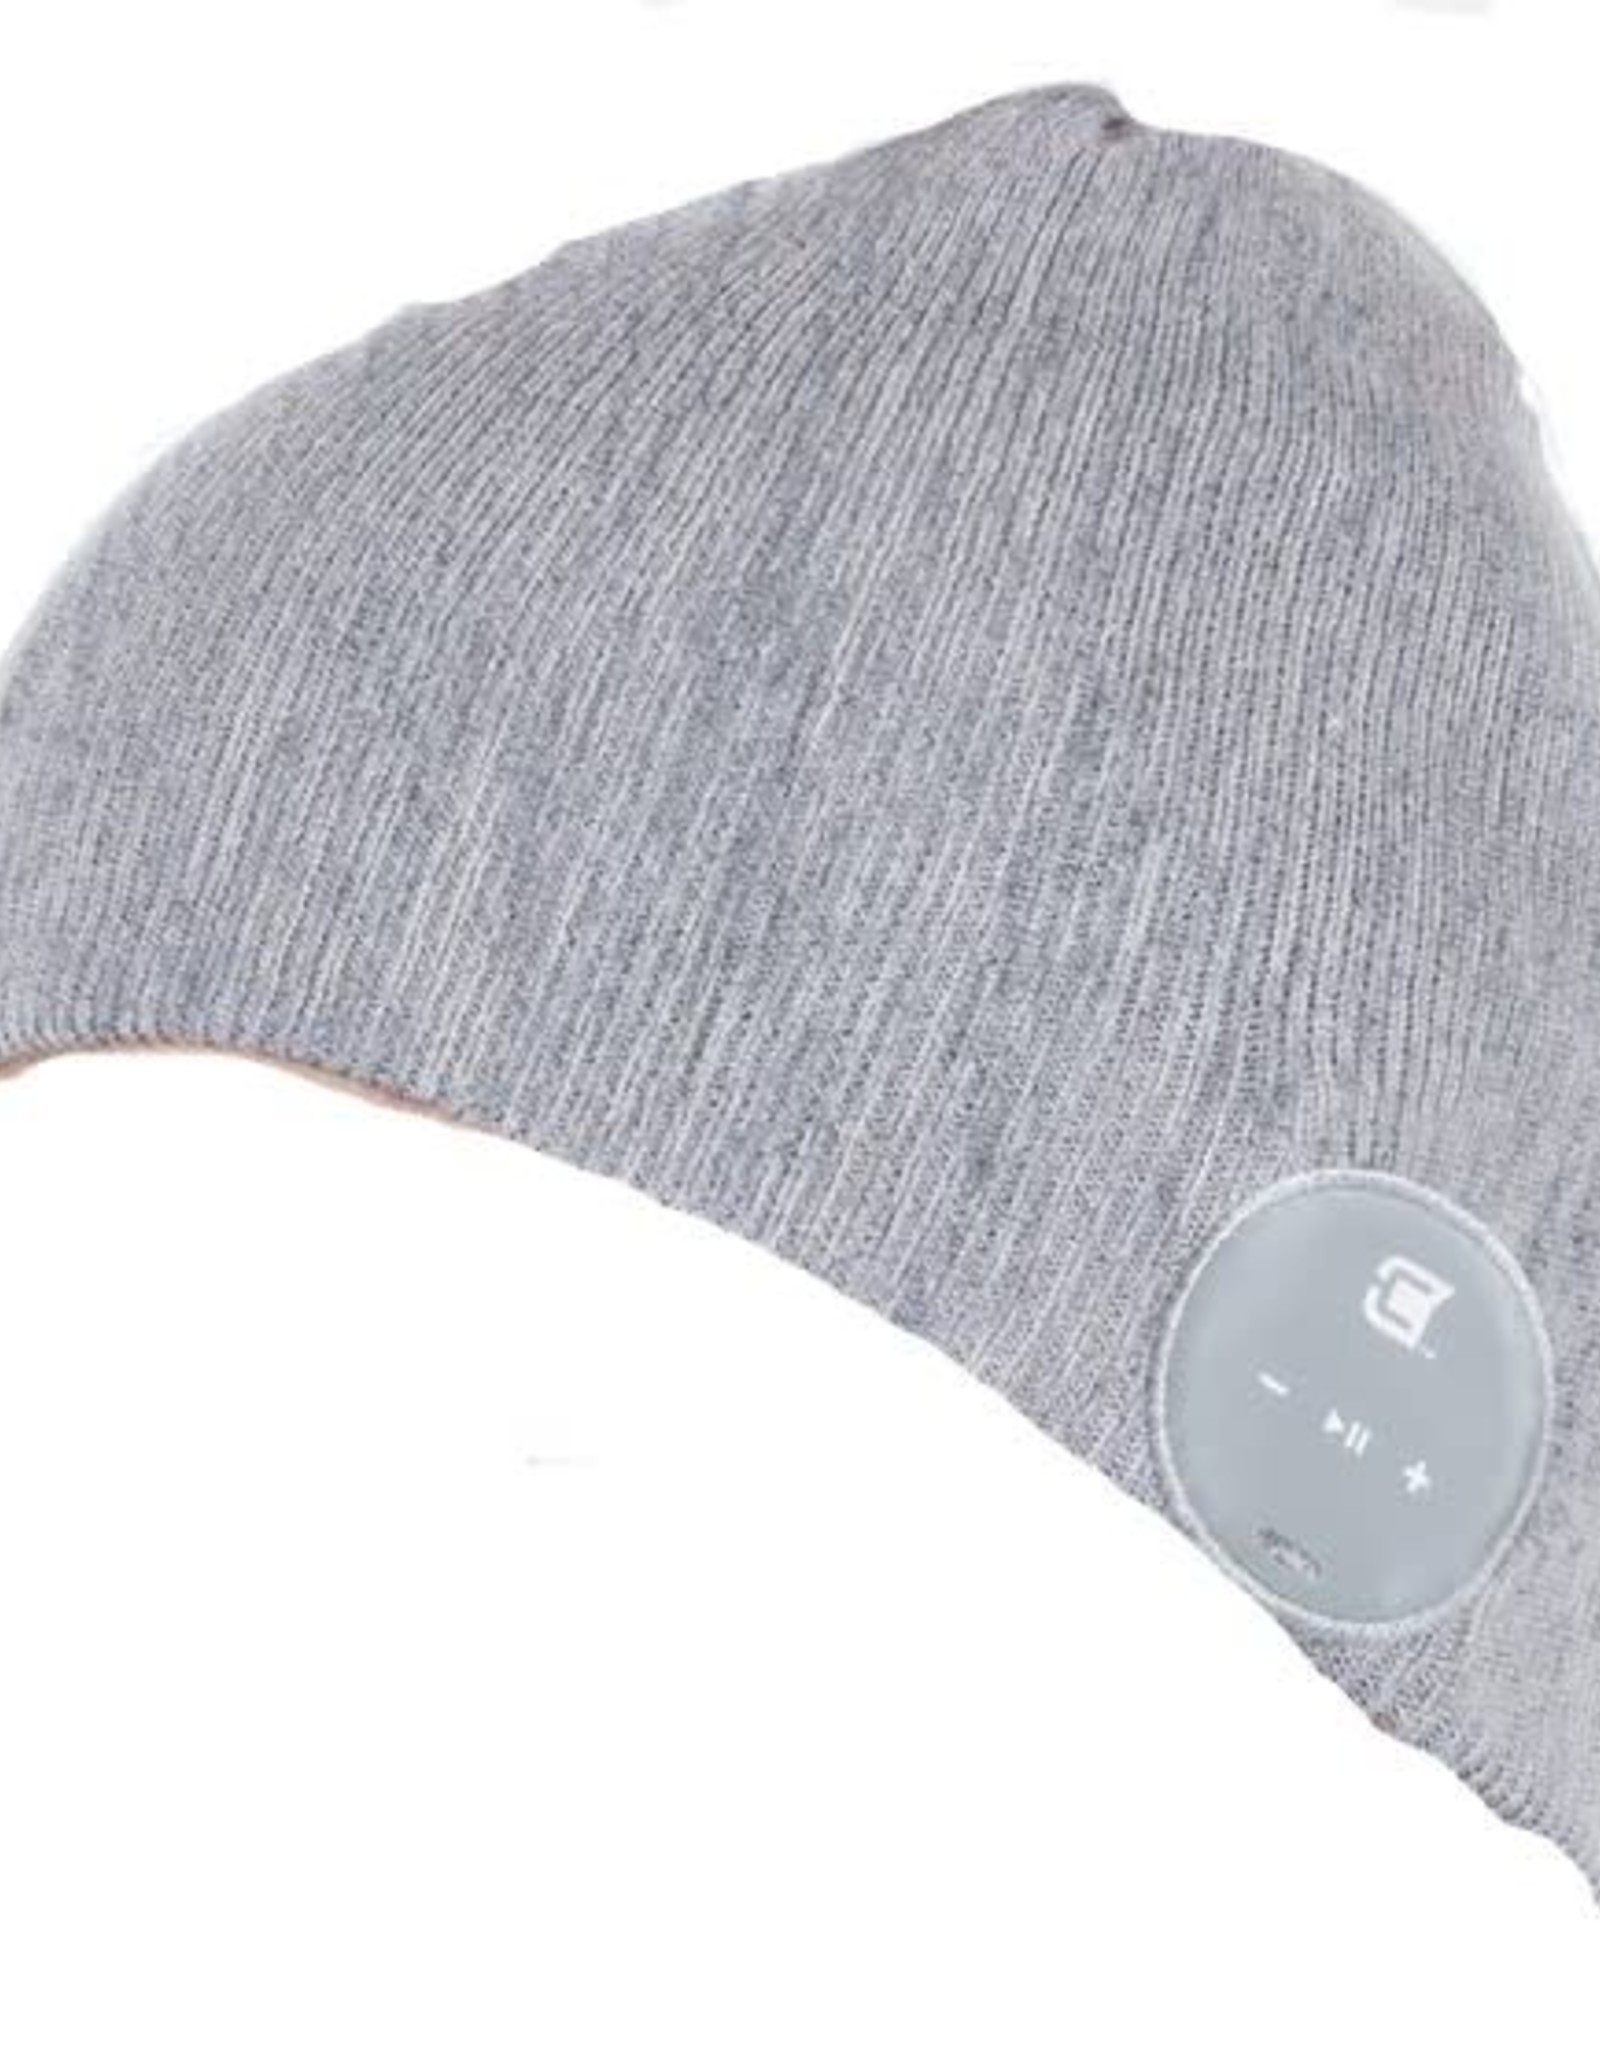 Caseco Caseco | Blu-Toque Slim Bluetooth Beanie - Ash Grey | C54BT02